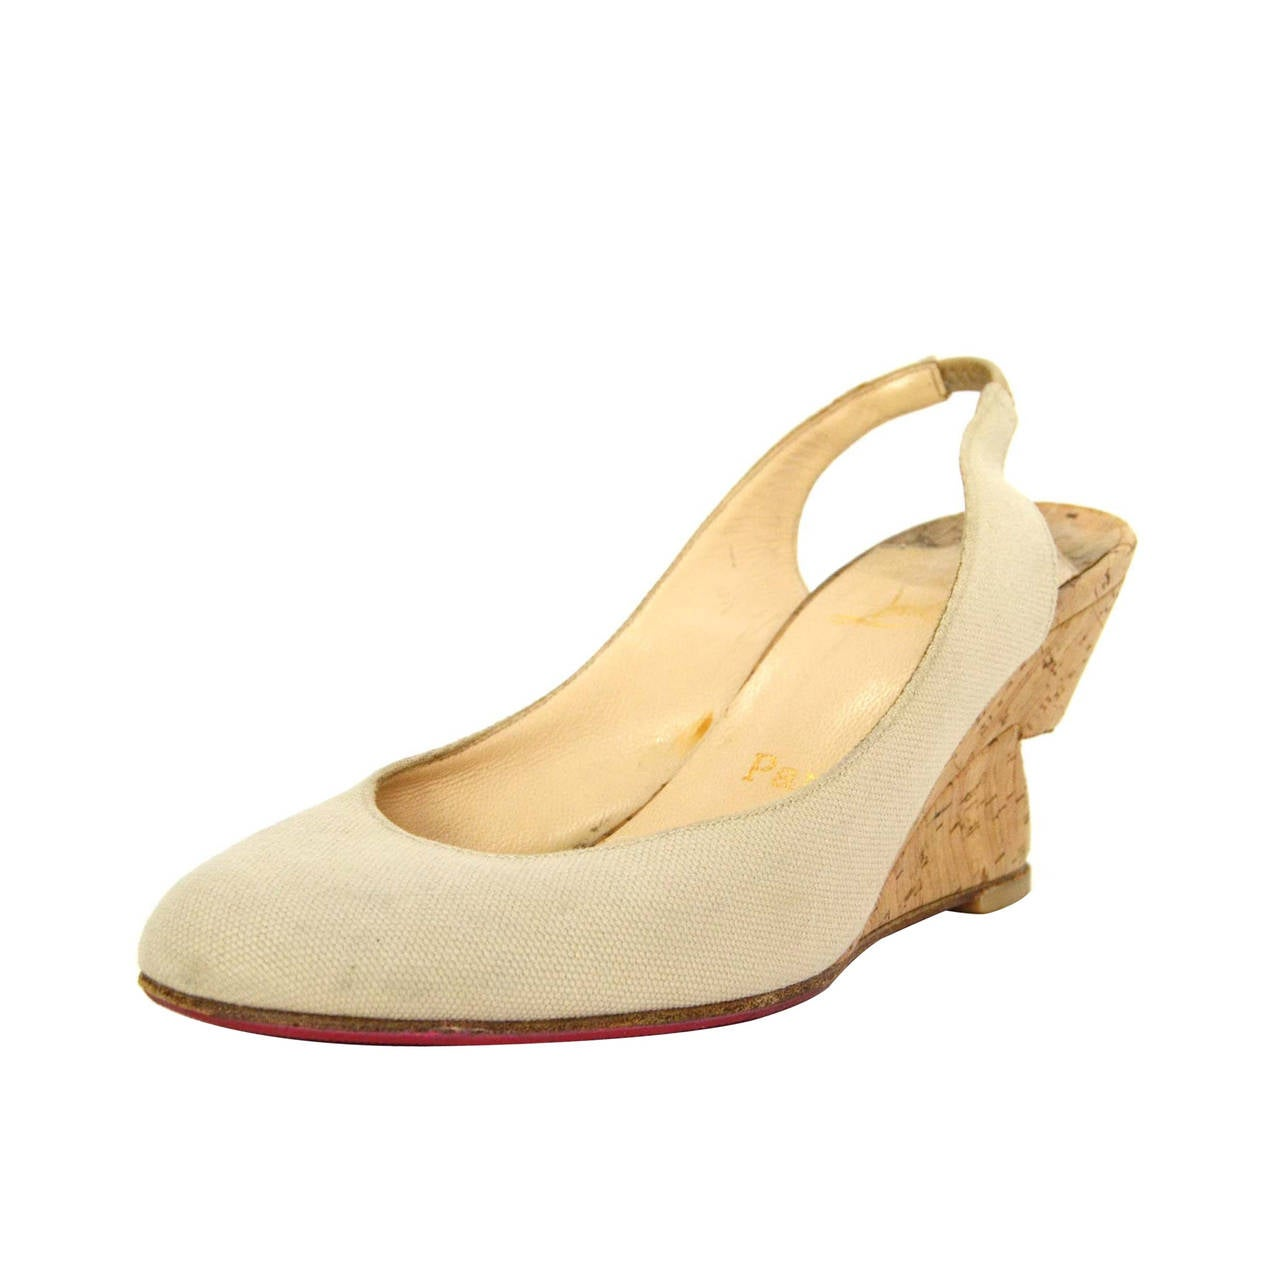 white louboutins shoes - christian louboutin round-toe wedges Creme canvas | The Little ...